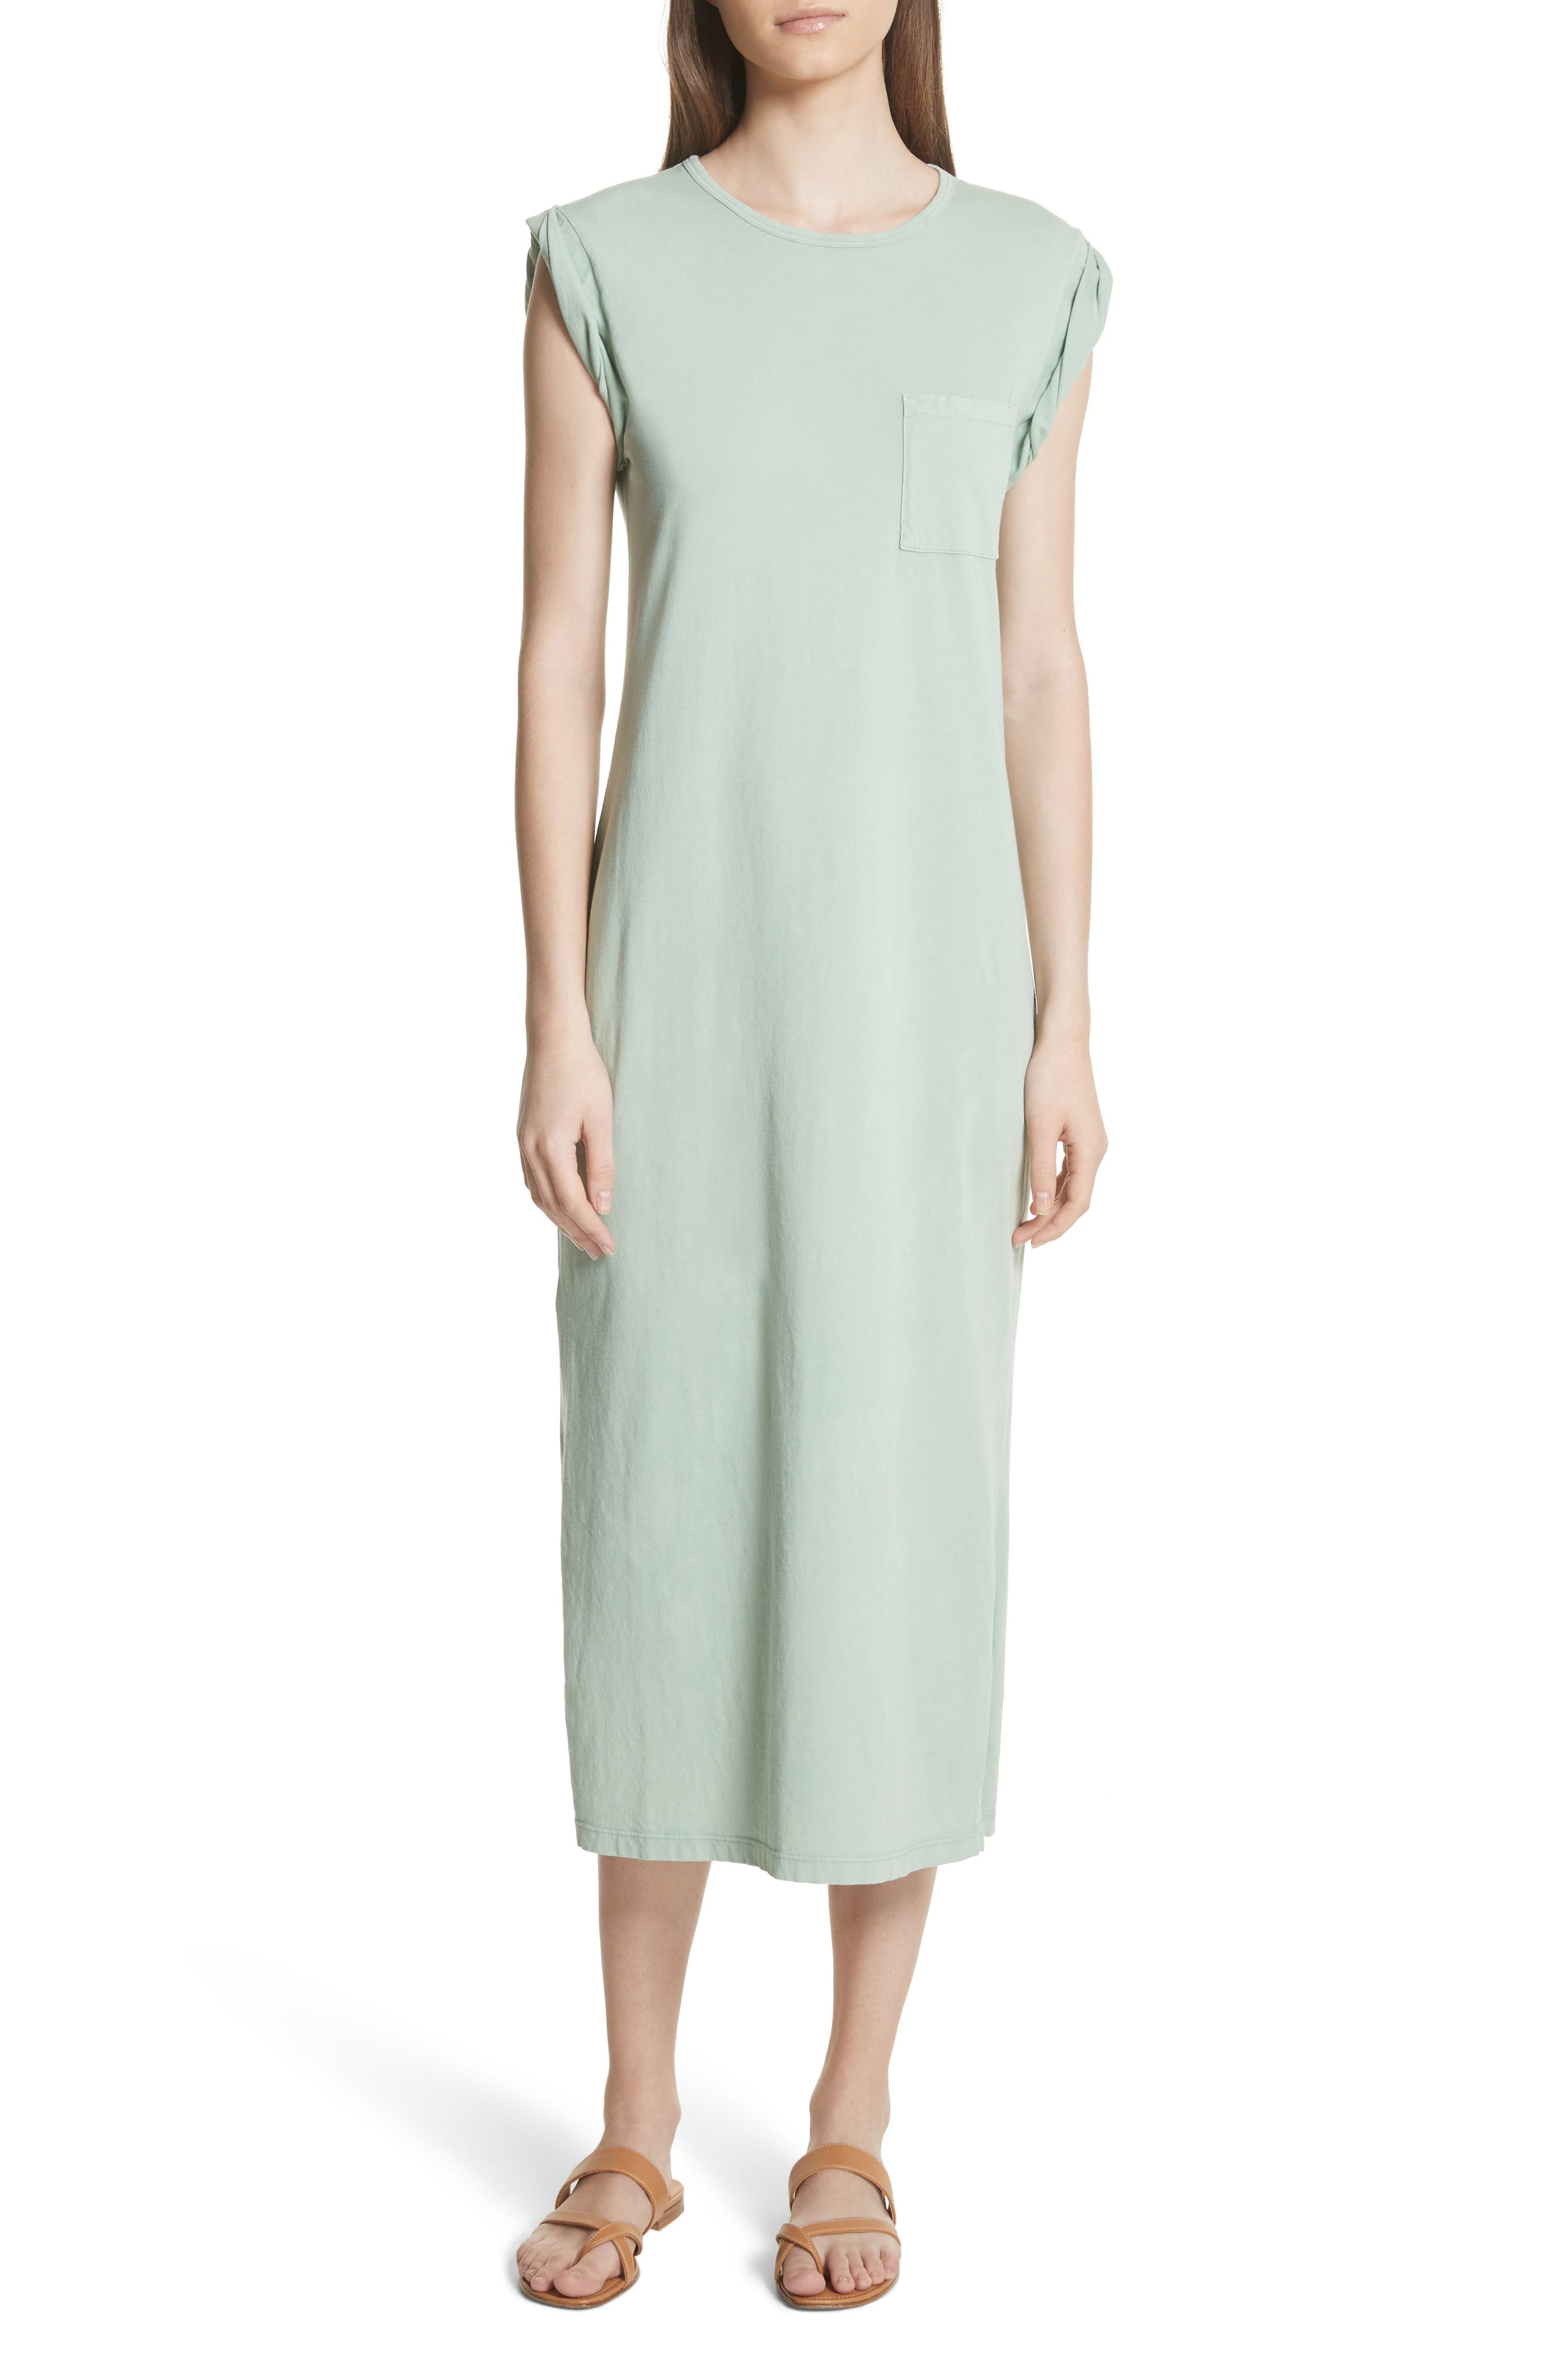 Muscle P Relaxed T-Shirt Dress,                             Main thumbnail 1, color,